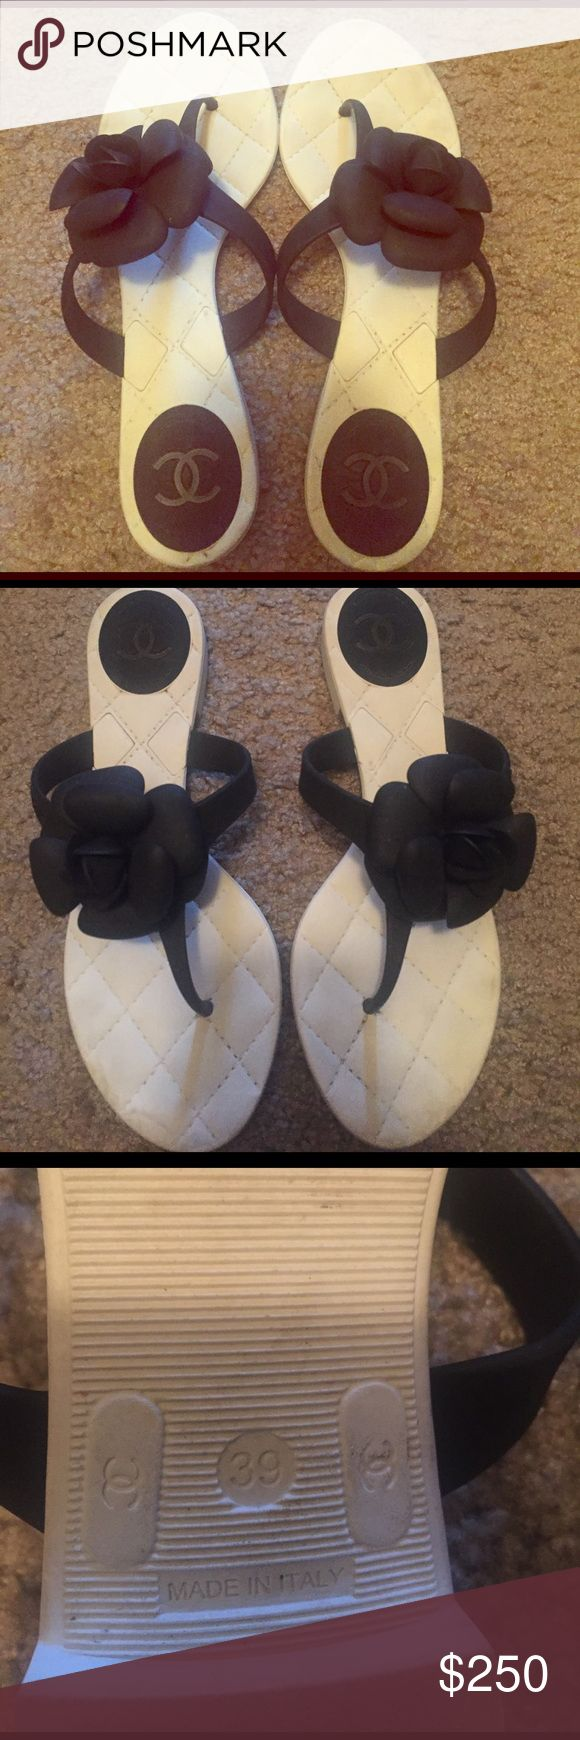 Authentic Chanel flip flips White rubber flip flops with black rubber flower. Used. Bought at nordstroms. CHANEL Shoes Sandals